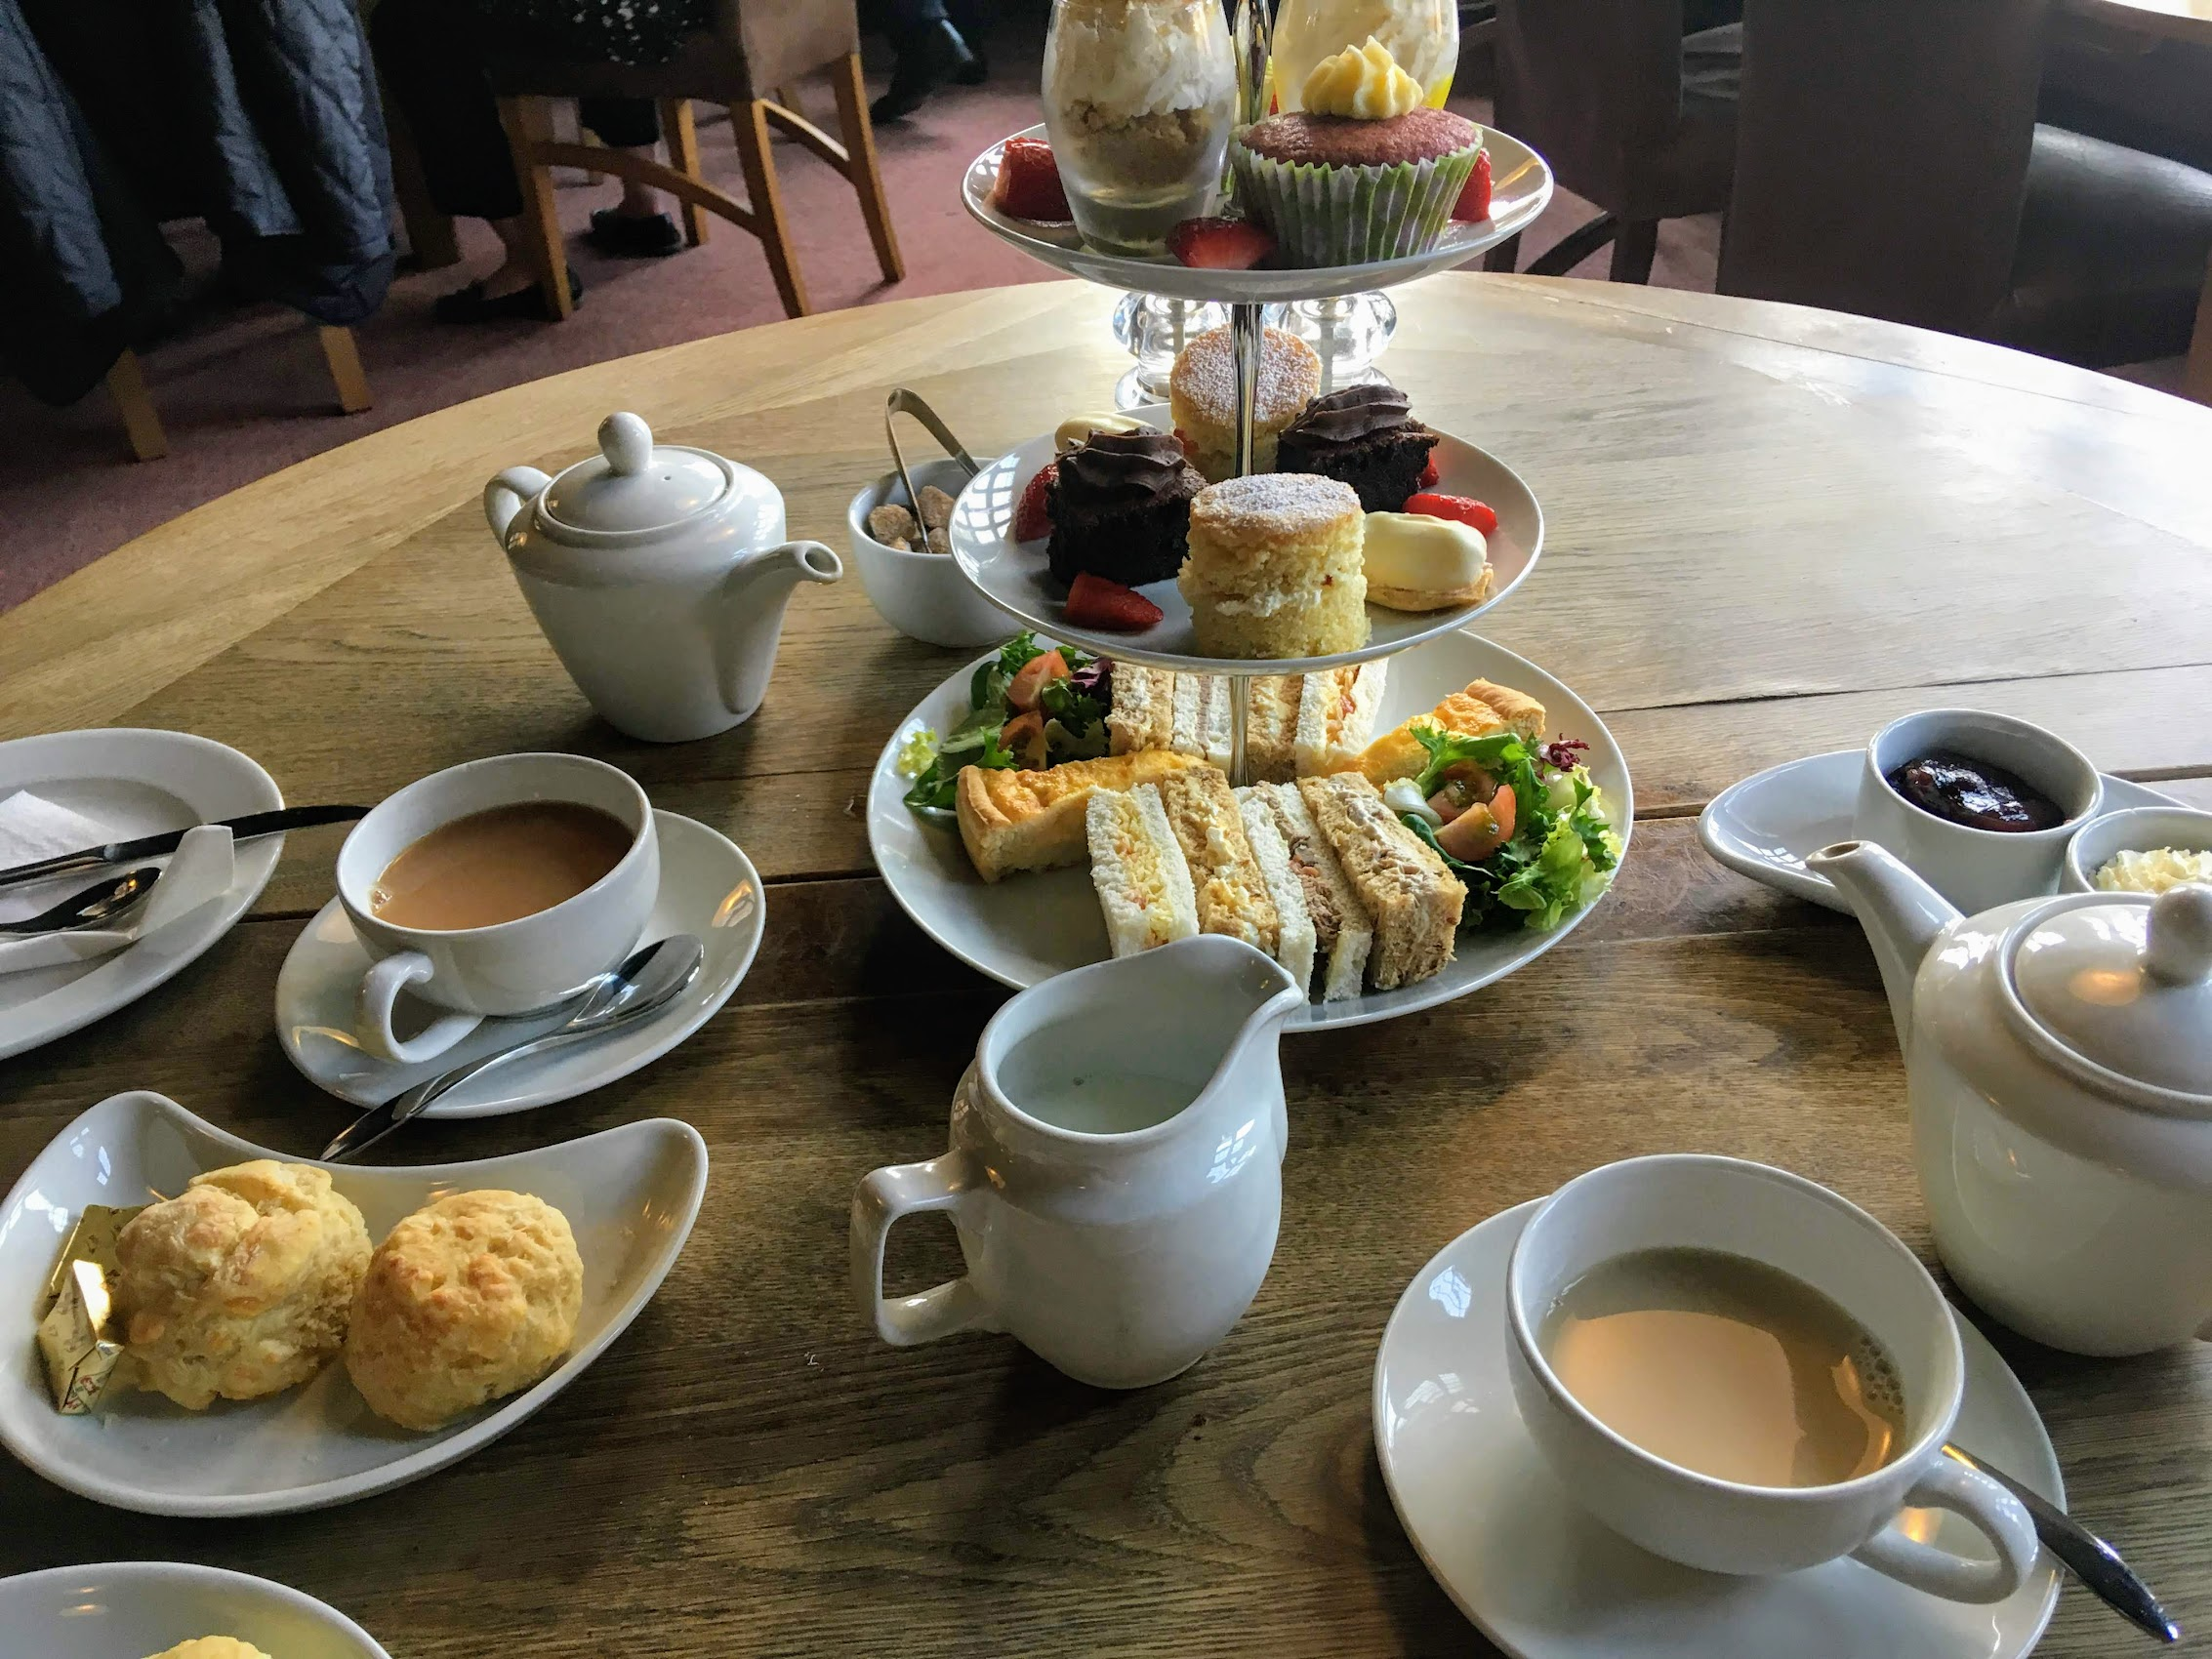 Afternoon Tea at Gladstone Library